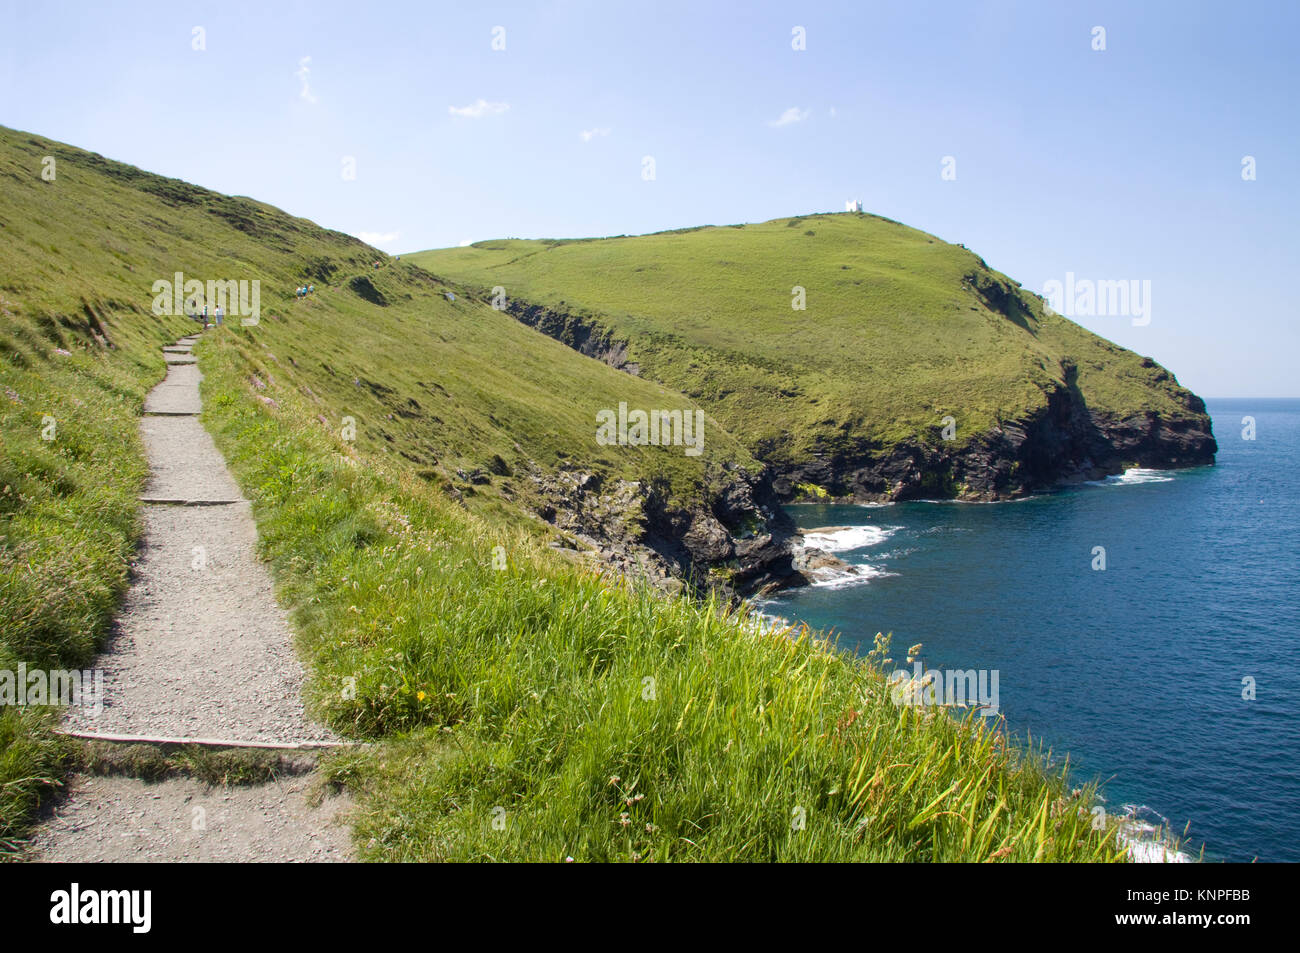 Footpath from Boscastle Harbour leading to the lookout station on top of the ridge. North Cornwall coast, England. - Stock Image